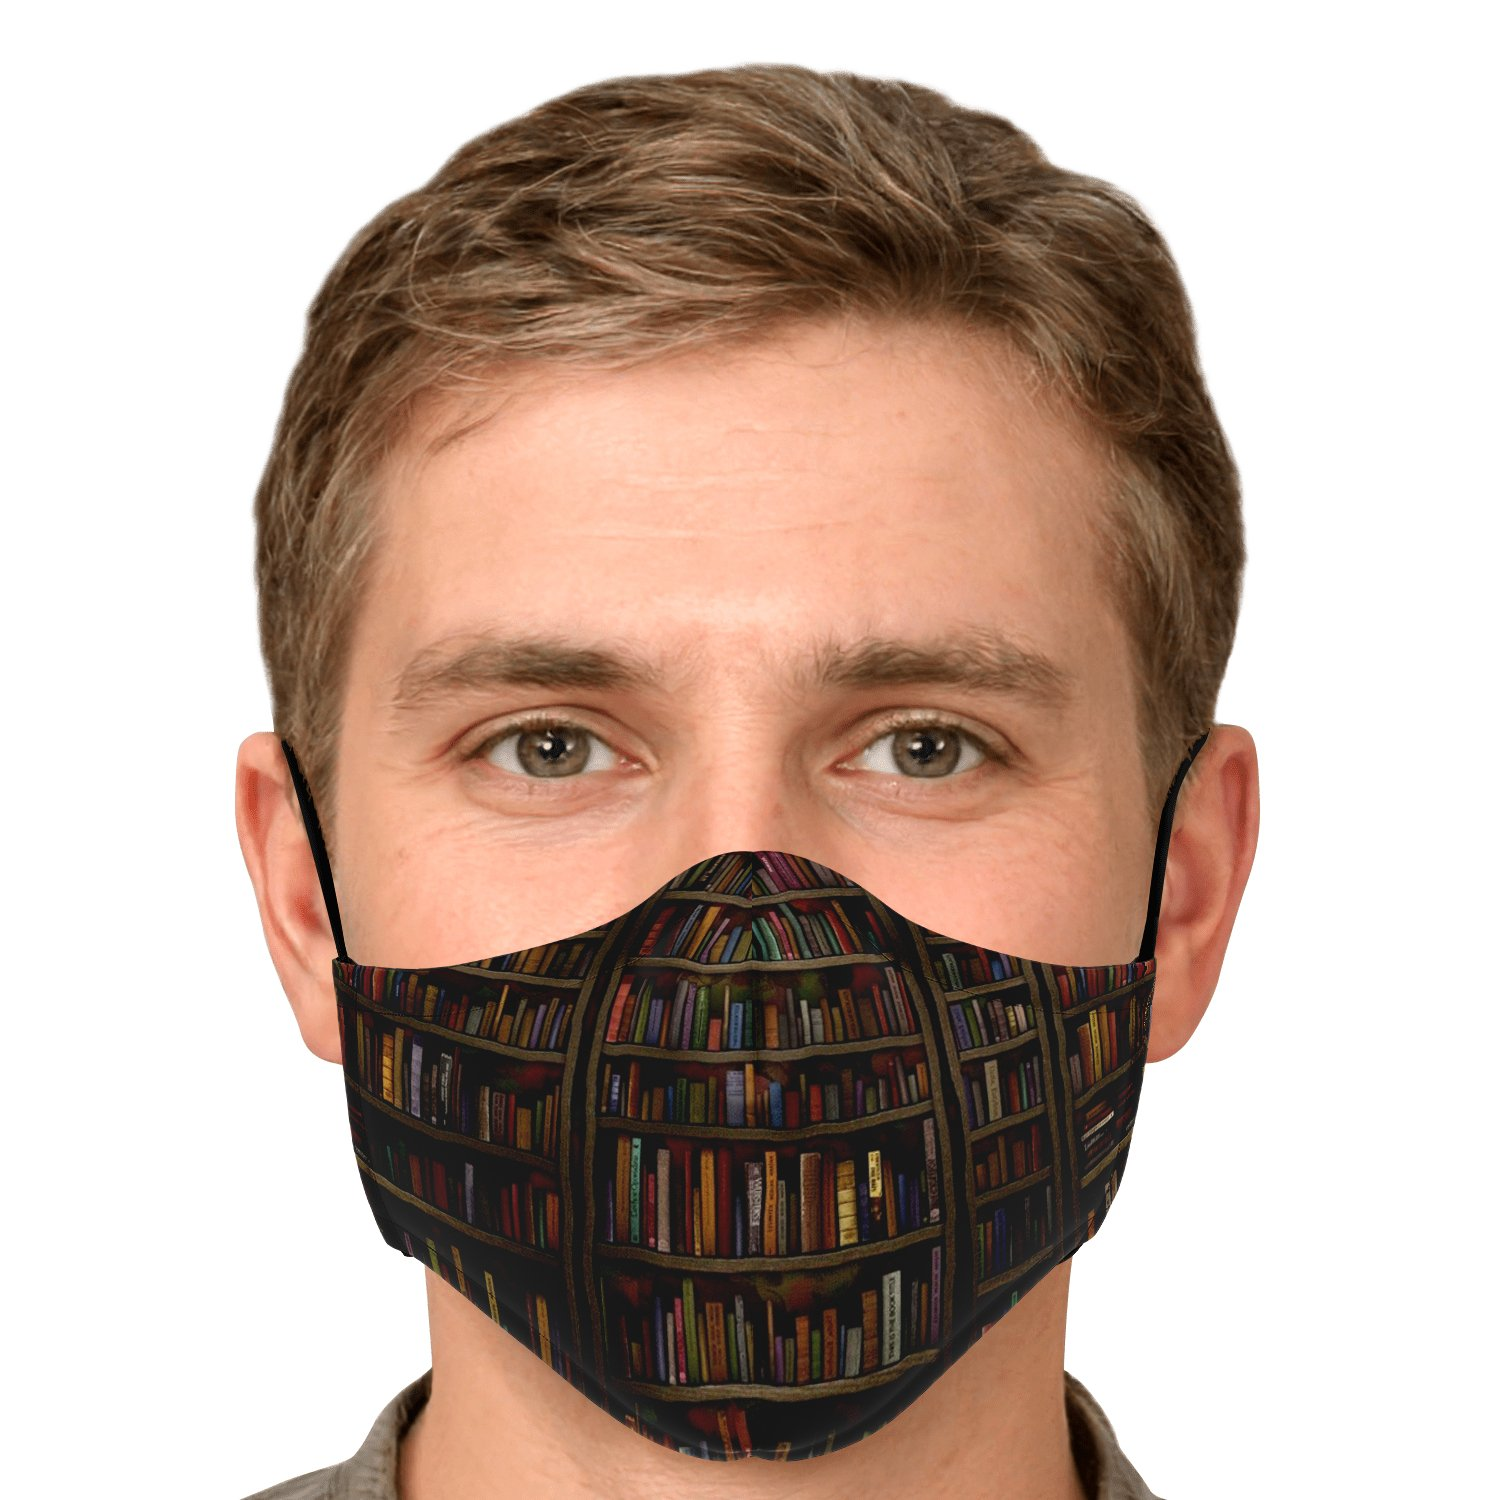 Librarian Old Book Lovers Face Mask 5